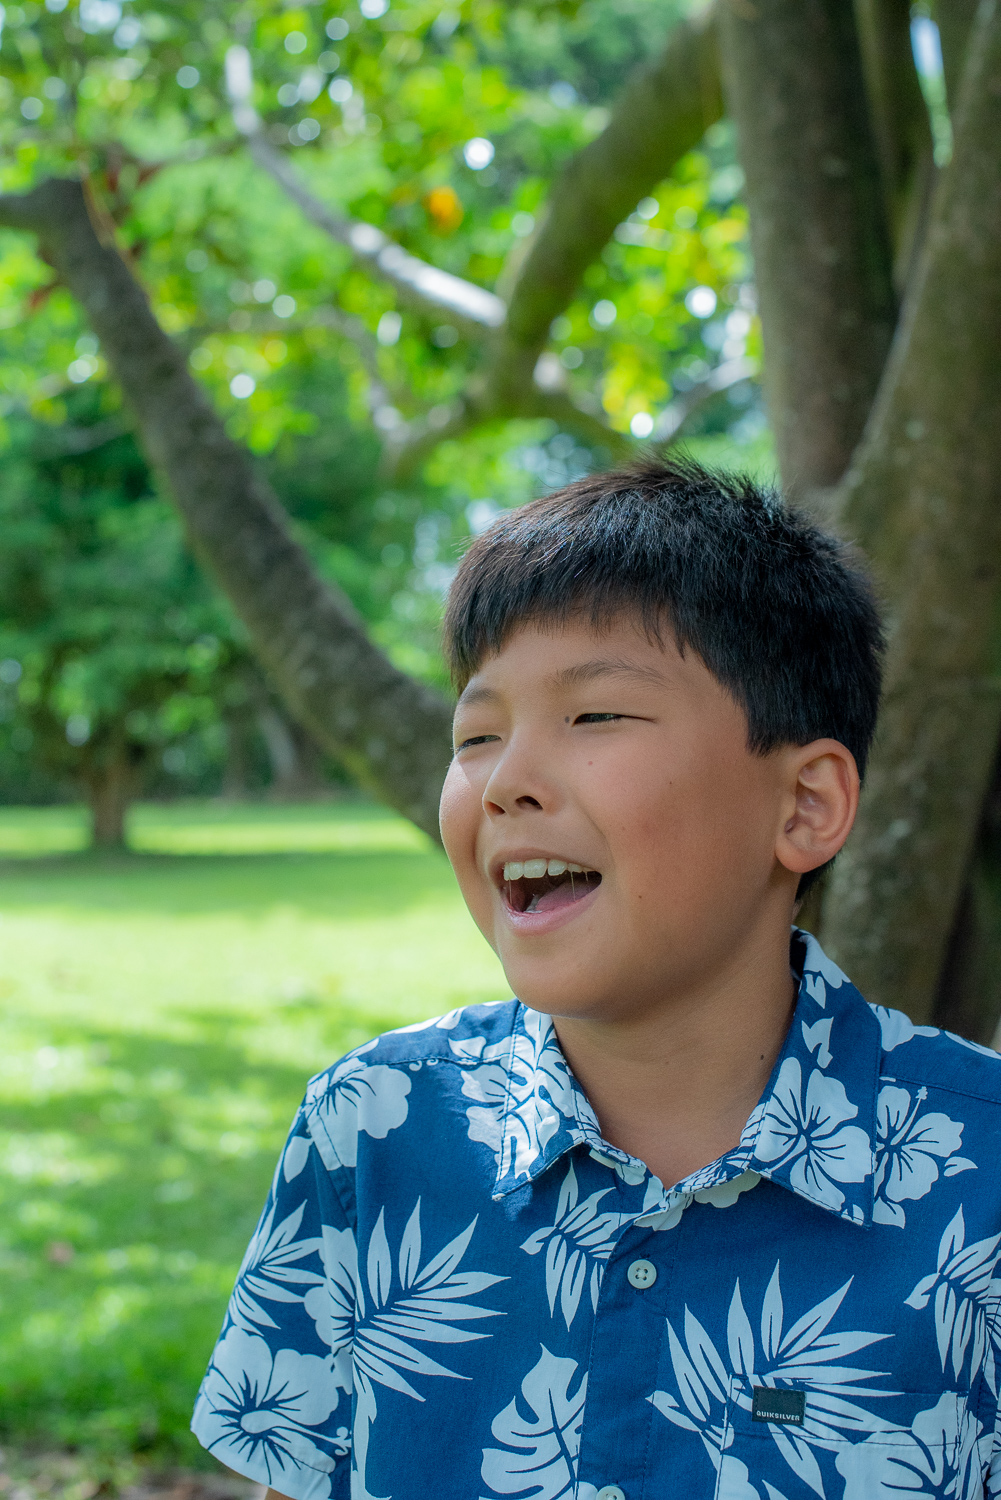 Young man with blue aloha shirt laughing